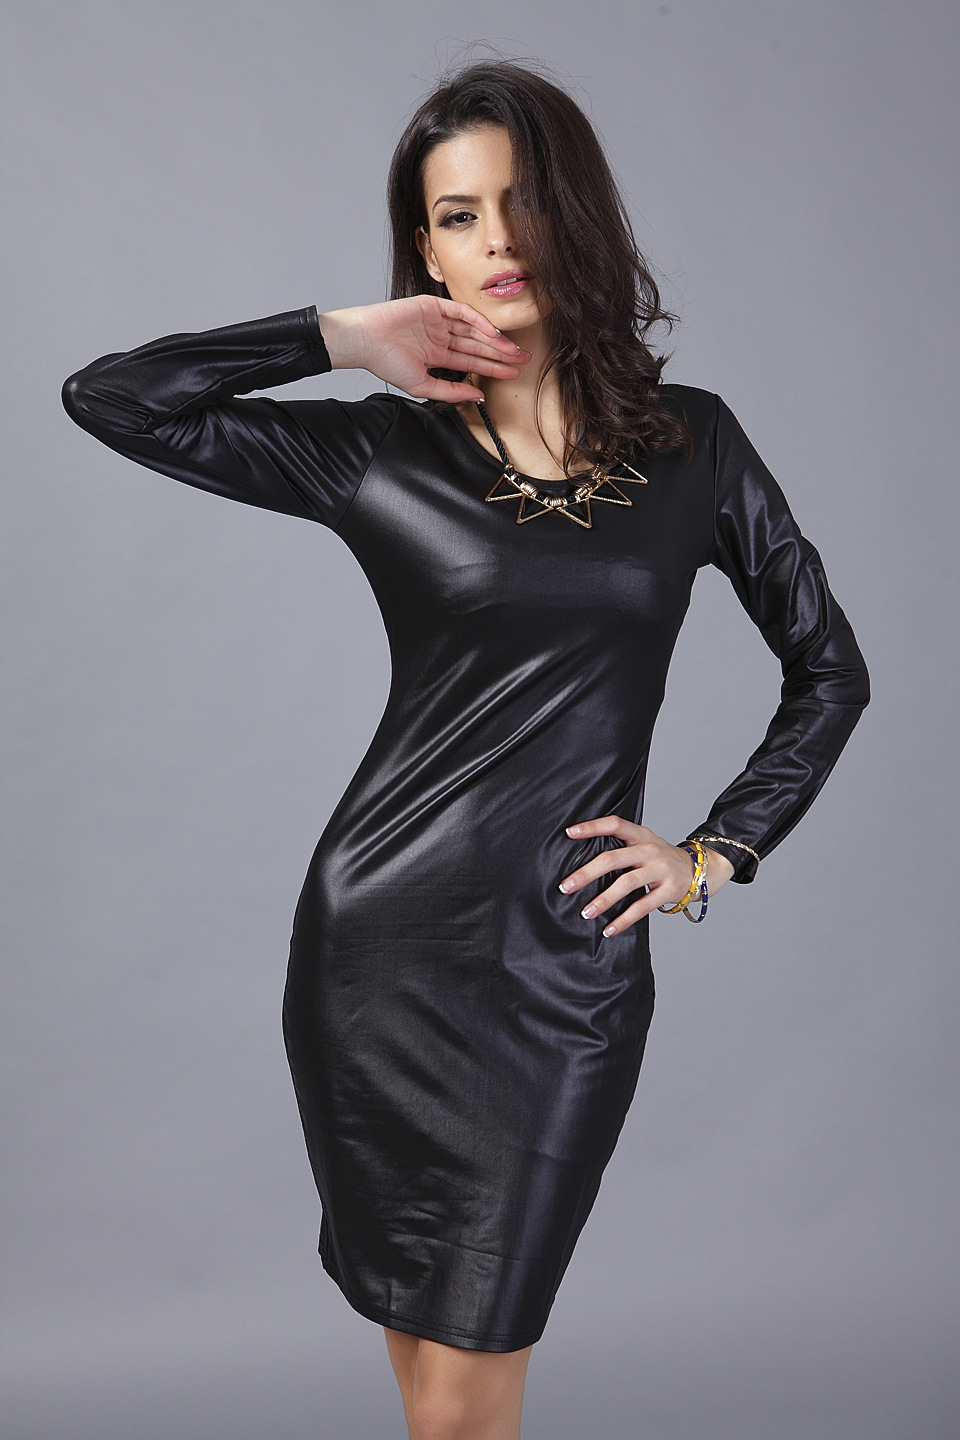 2743ccb94e9 Summer Dress 2017 New Arrival Woman Fashion Thin Faux Leather Dress Long  Sleeve Above Knee Mini Sexy Black Bodycon Women Dresses-in Dresses from  Women s ...